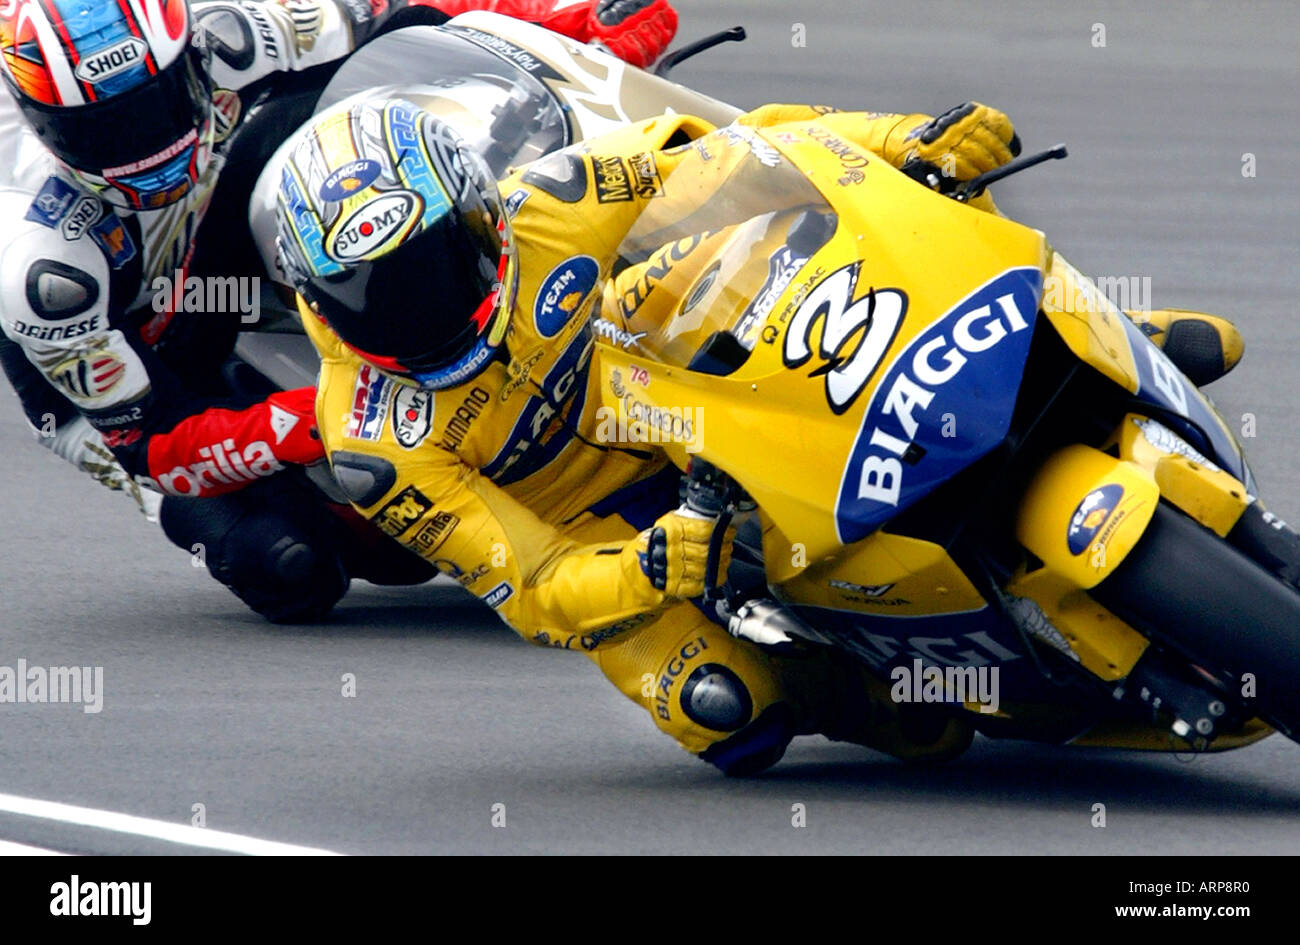 Max biaggi moto gp rider for the 2004 camel honda team for Camel motors on park and ajo